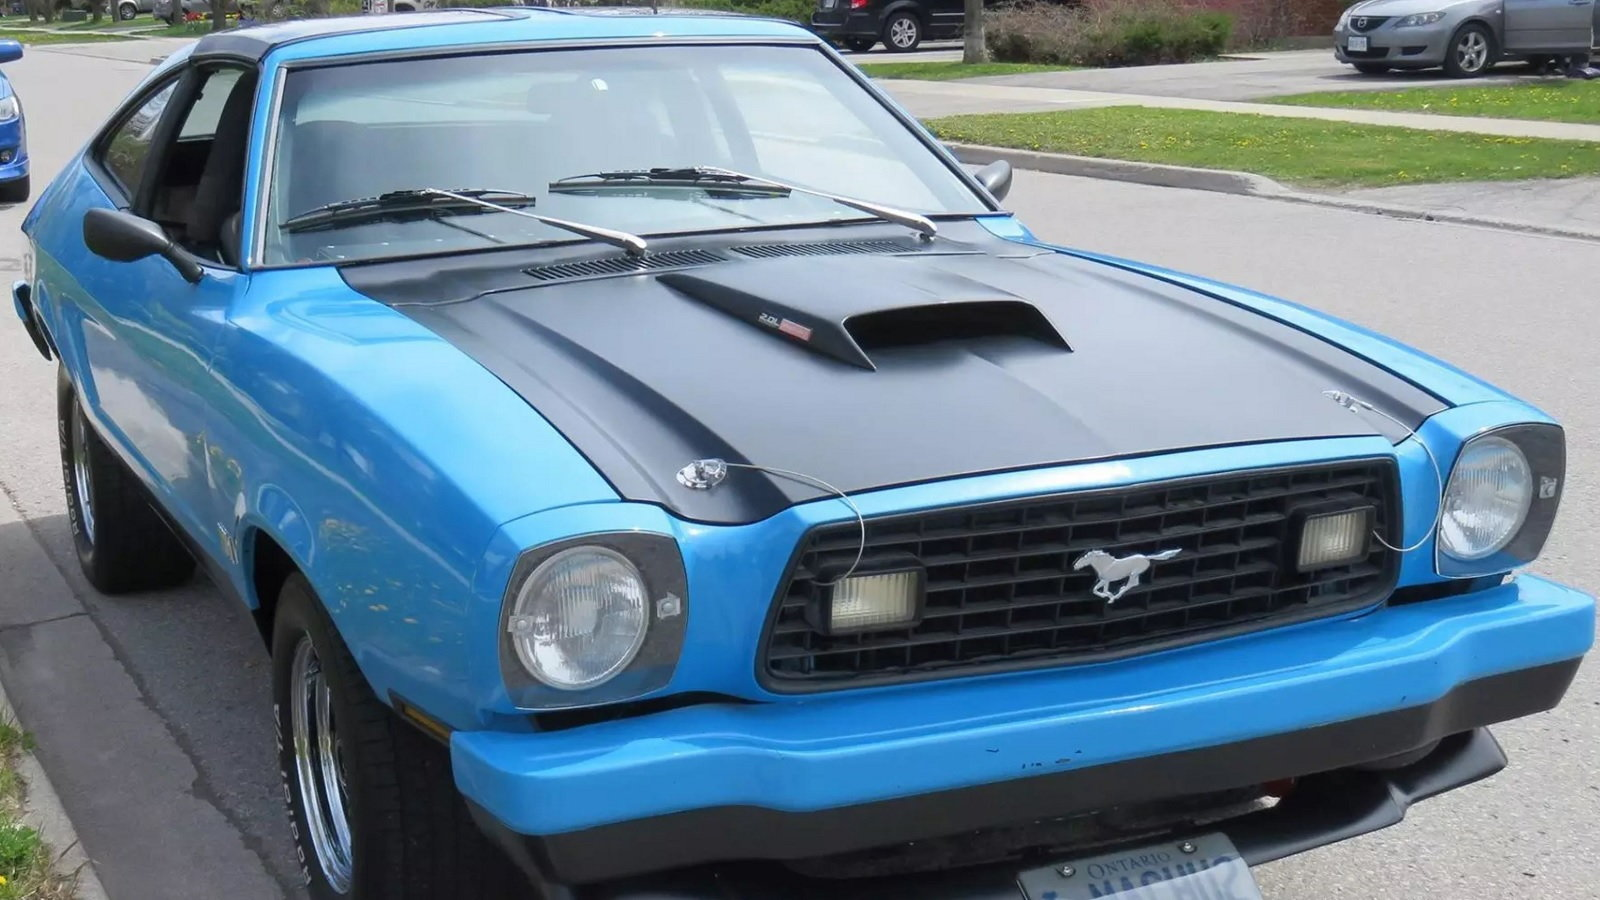 Jason Bowman has owned his Ford Mustang II for a very, very long time